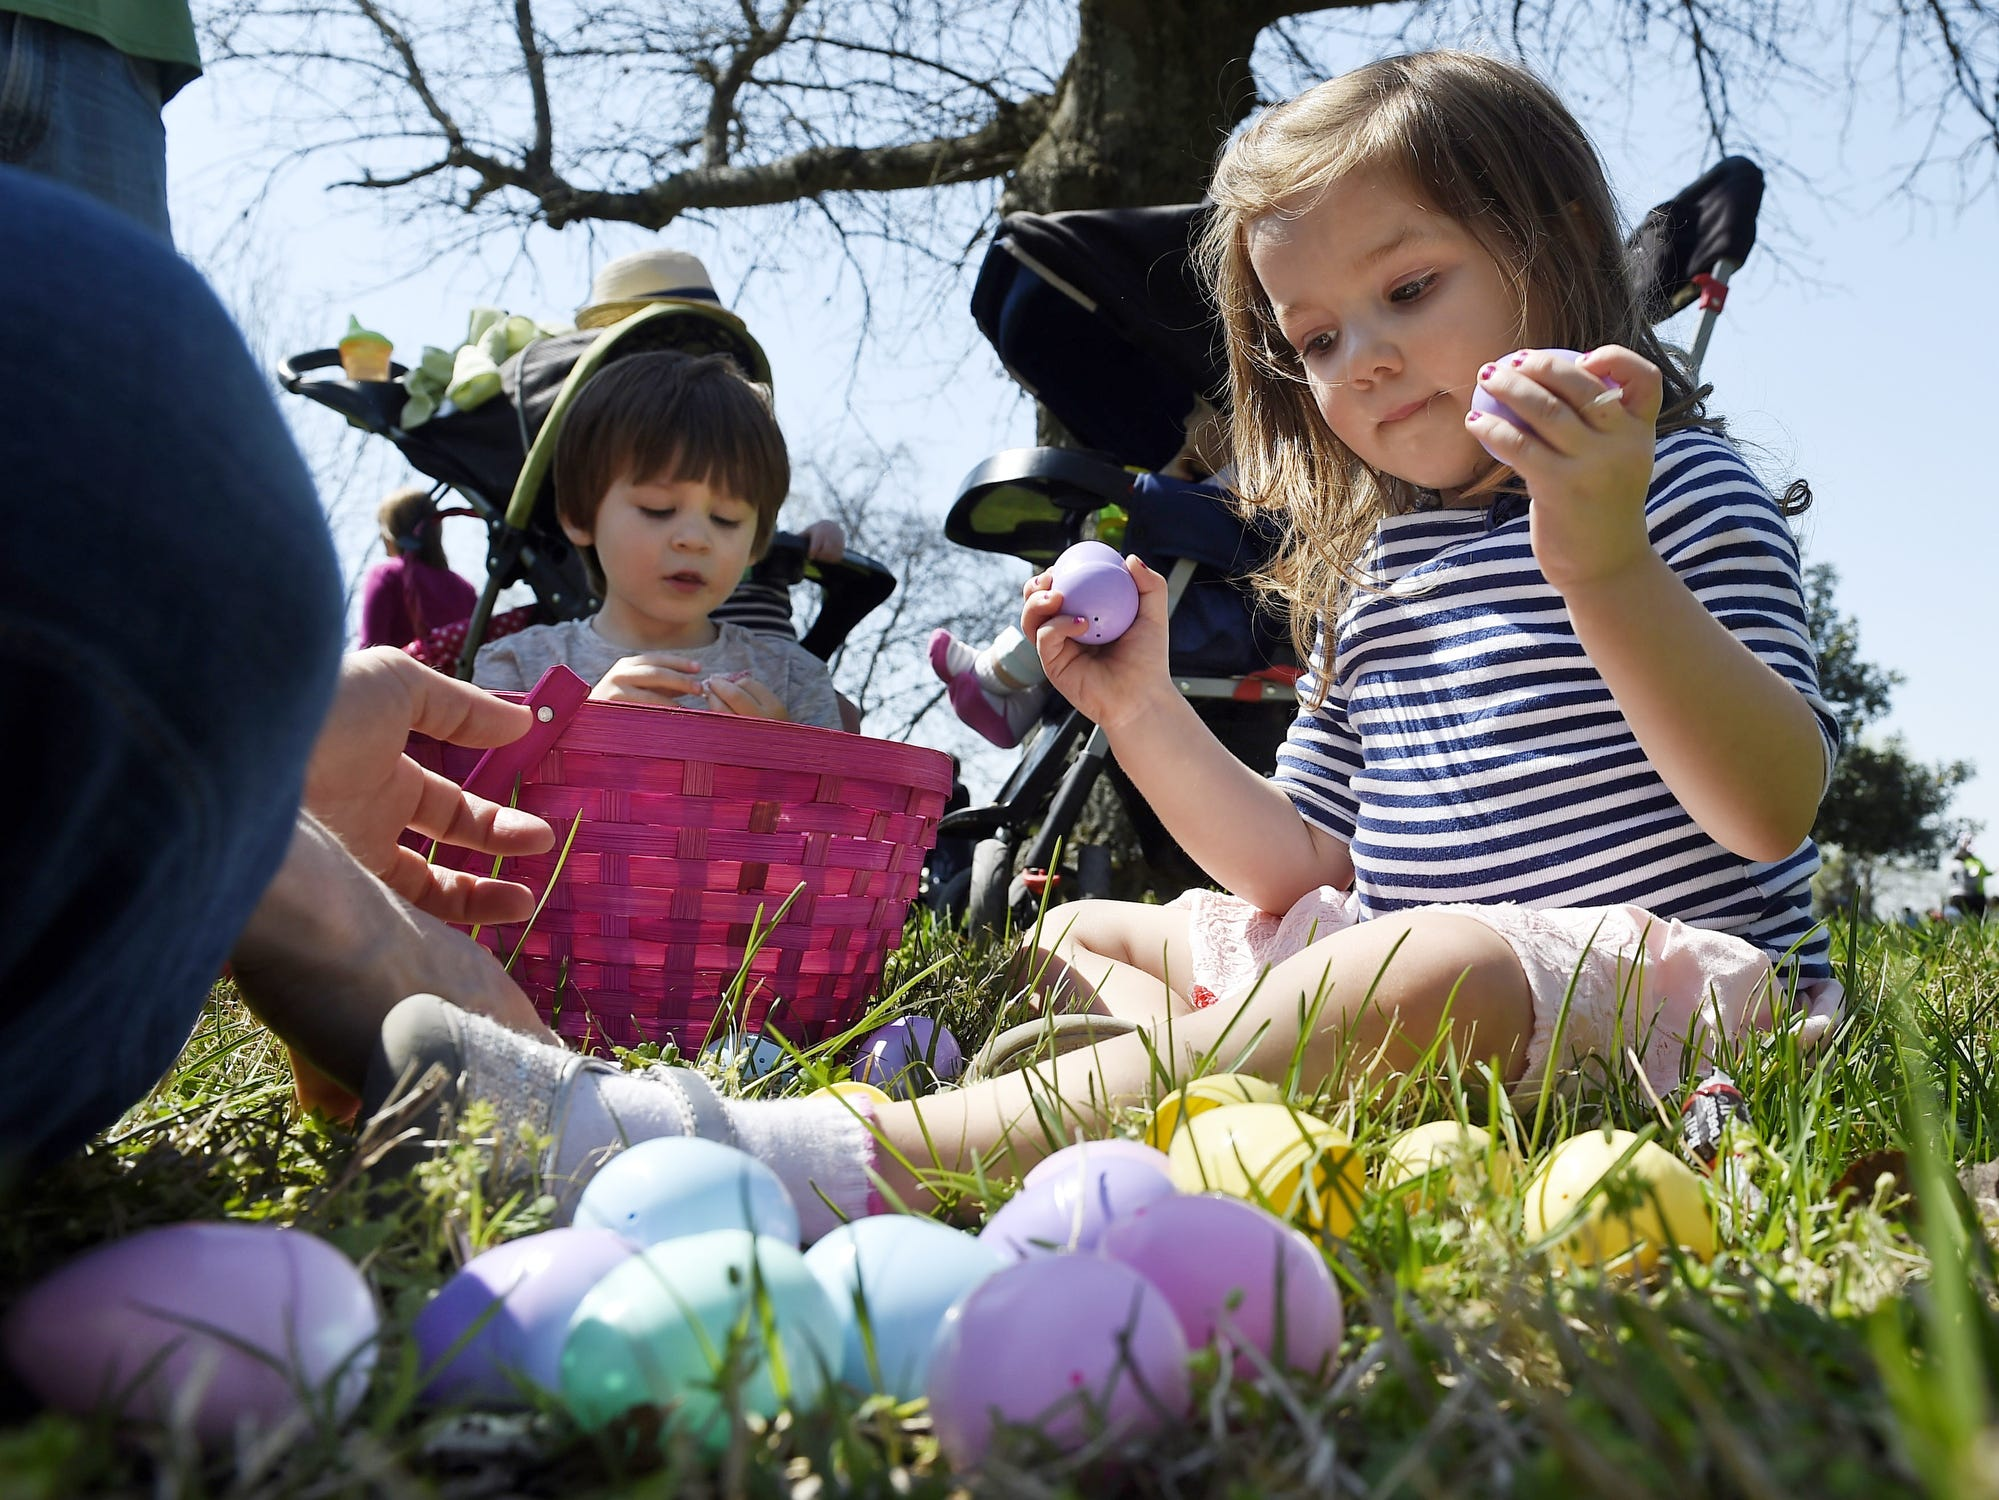 April 20  PRESIDENTIAL EASTER EGG HUNT: 9:30-11:30 a.m. and 12:30 to 2:30 p.m.; sensory-friendly egg hunt at 3:30 p.m. The Hermitage, $12, thehermitage.com